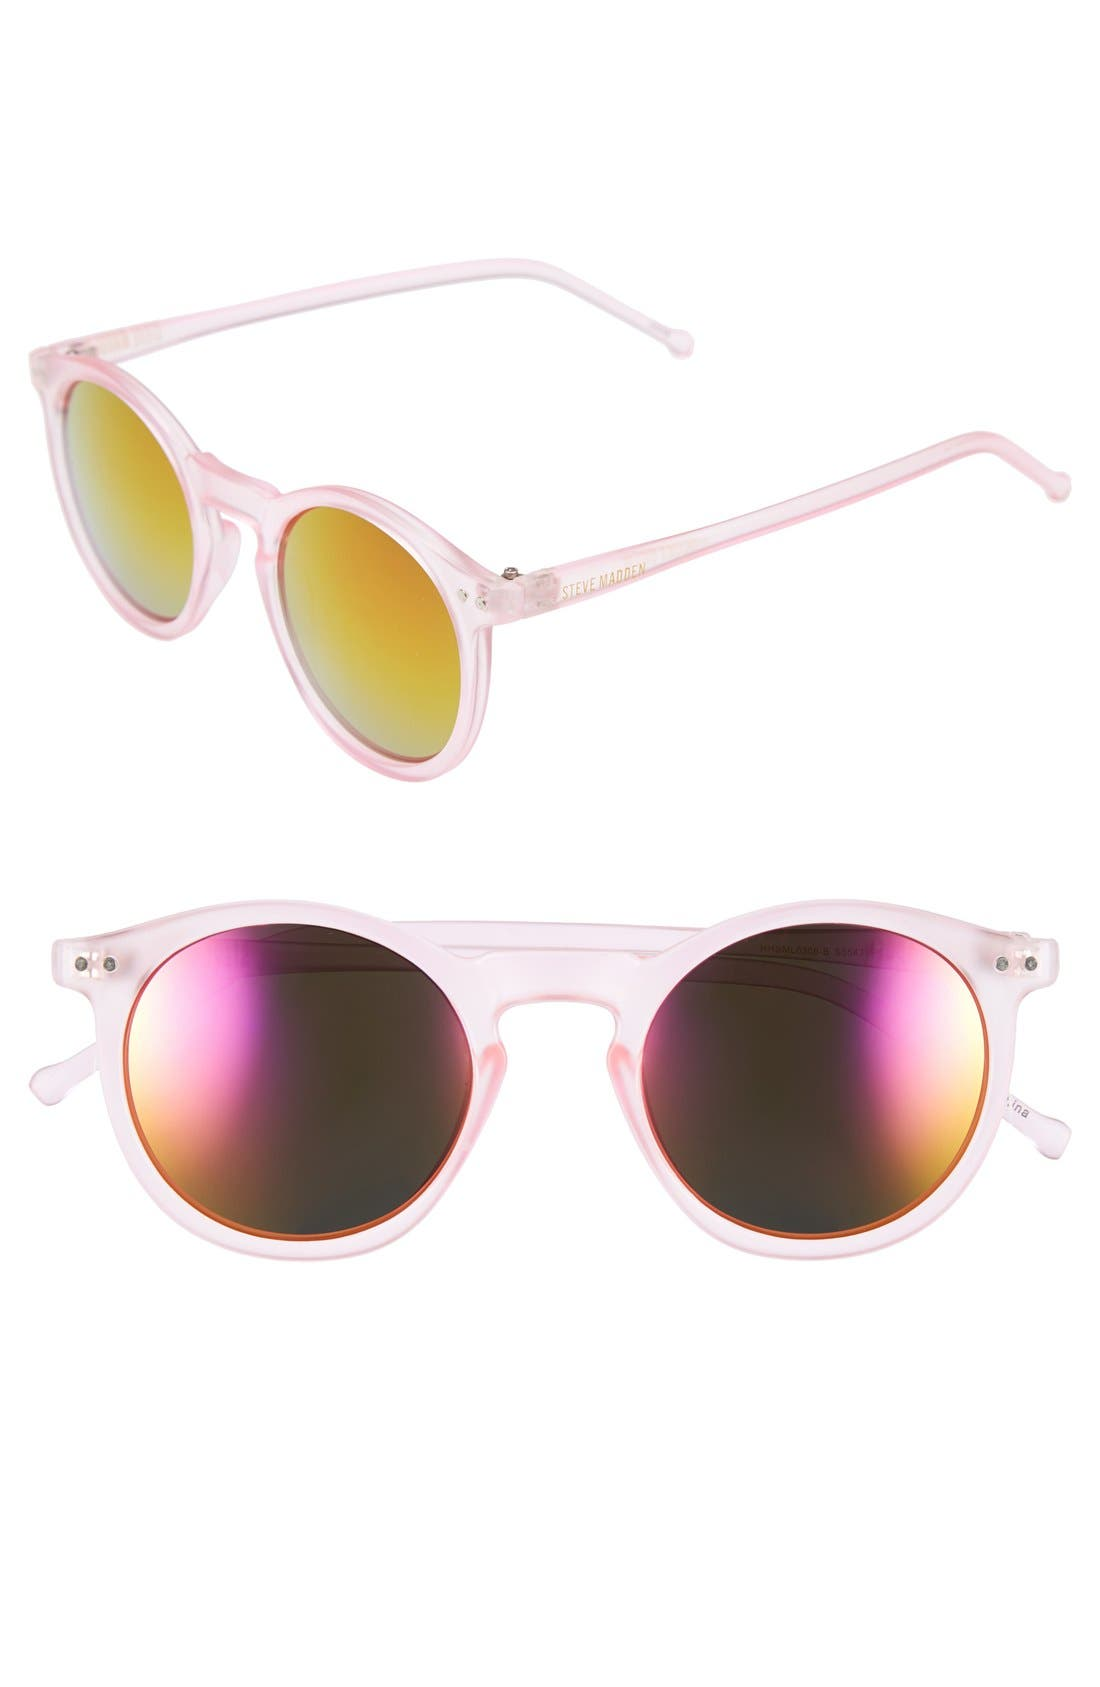 Main Image - Steve Madden 49mm Round Sunglasses